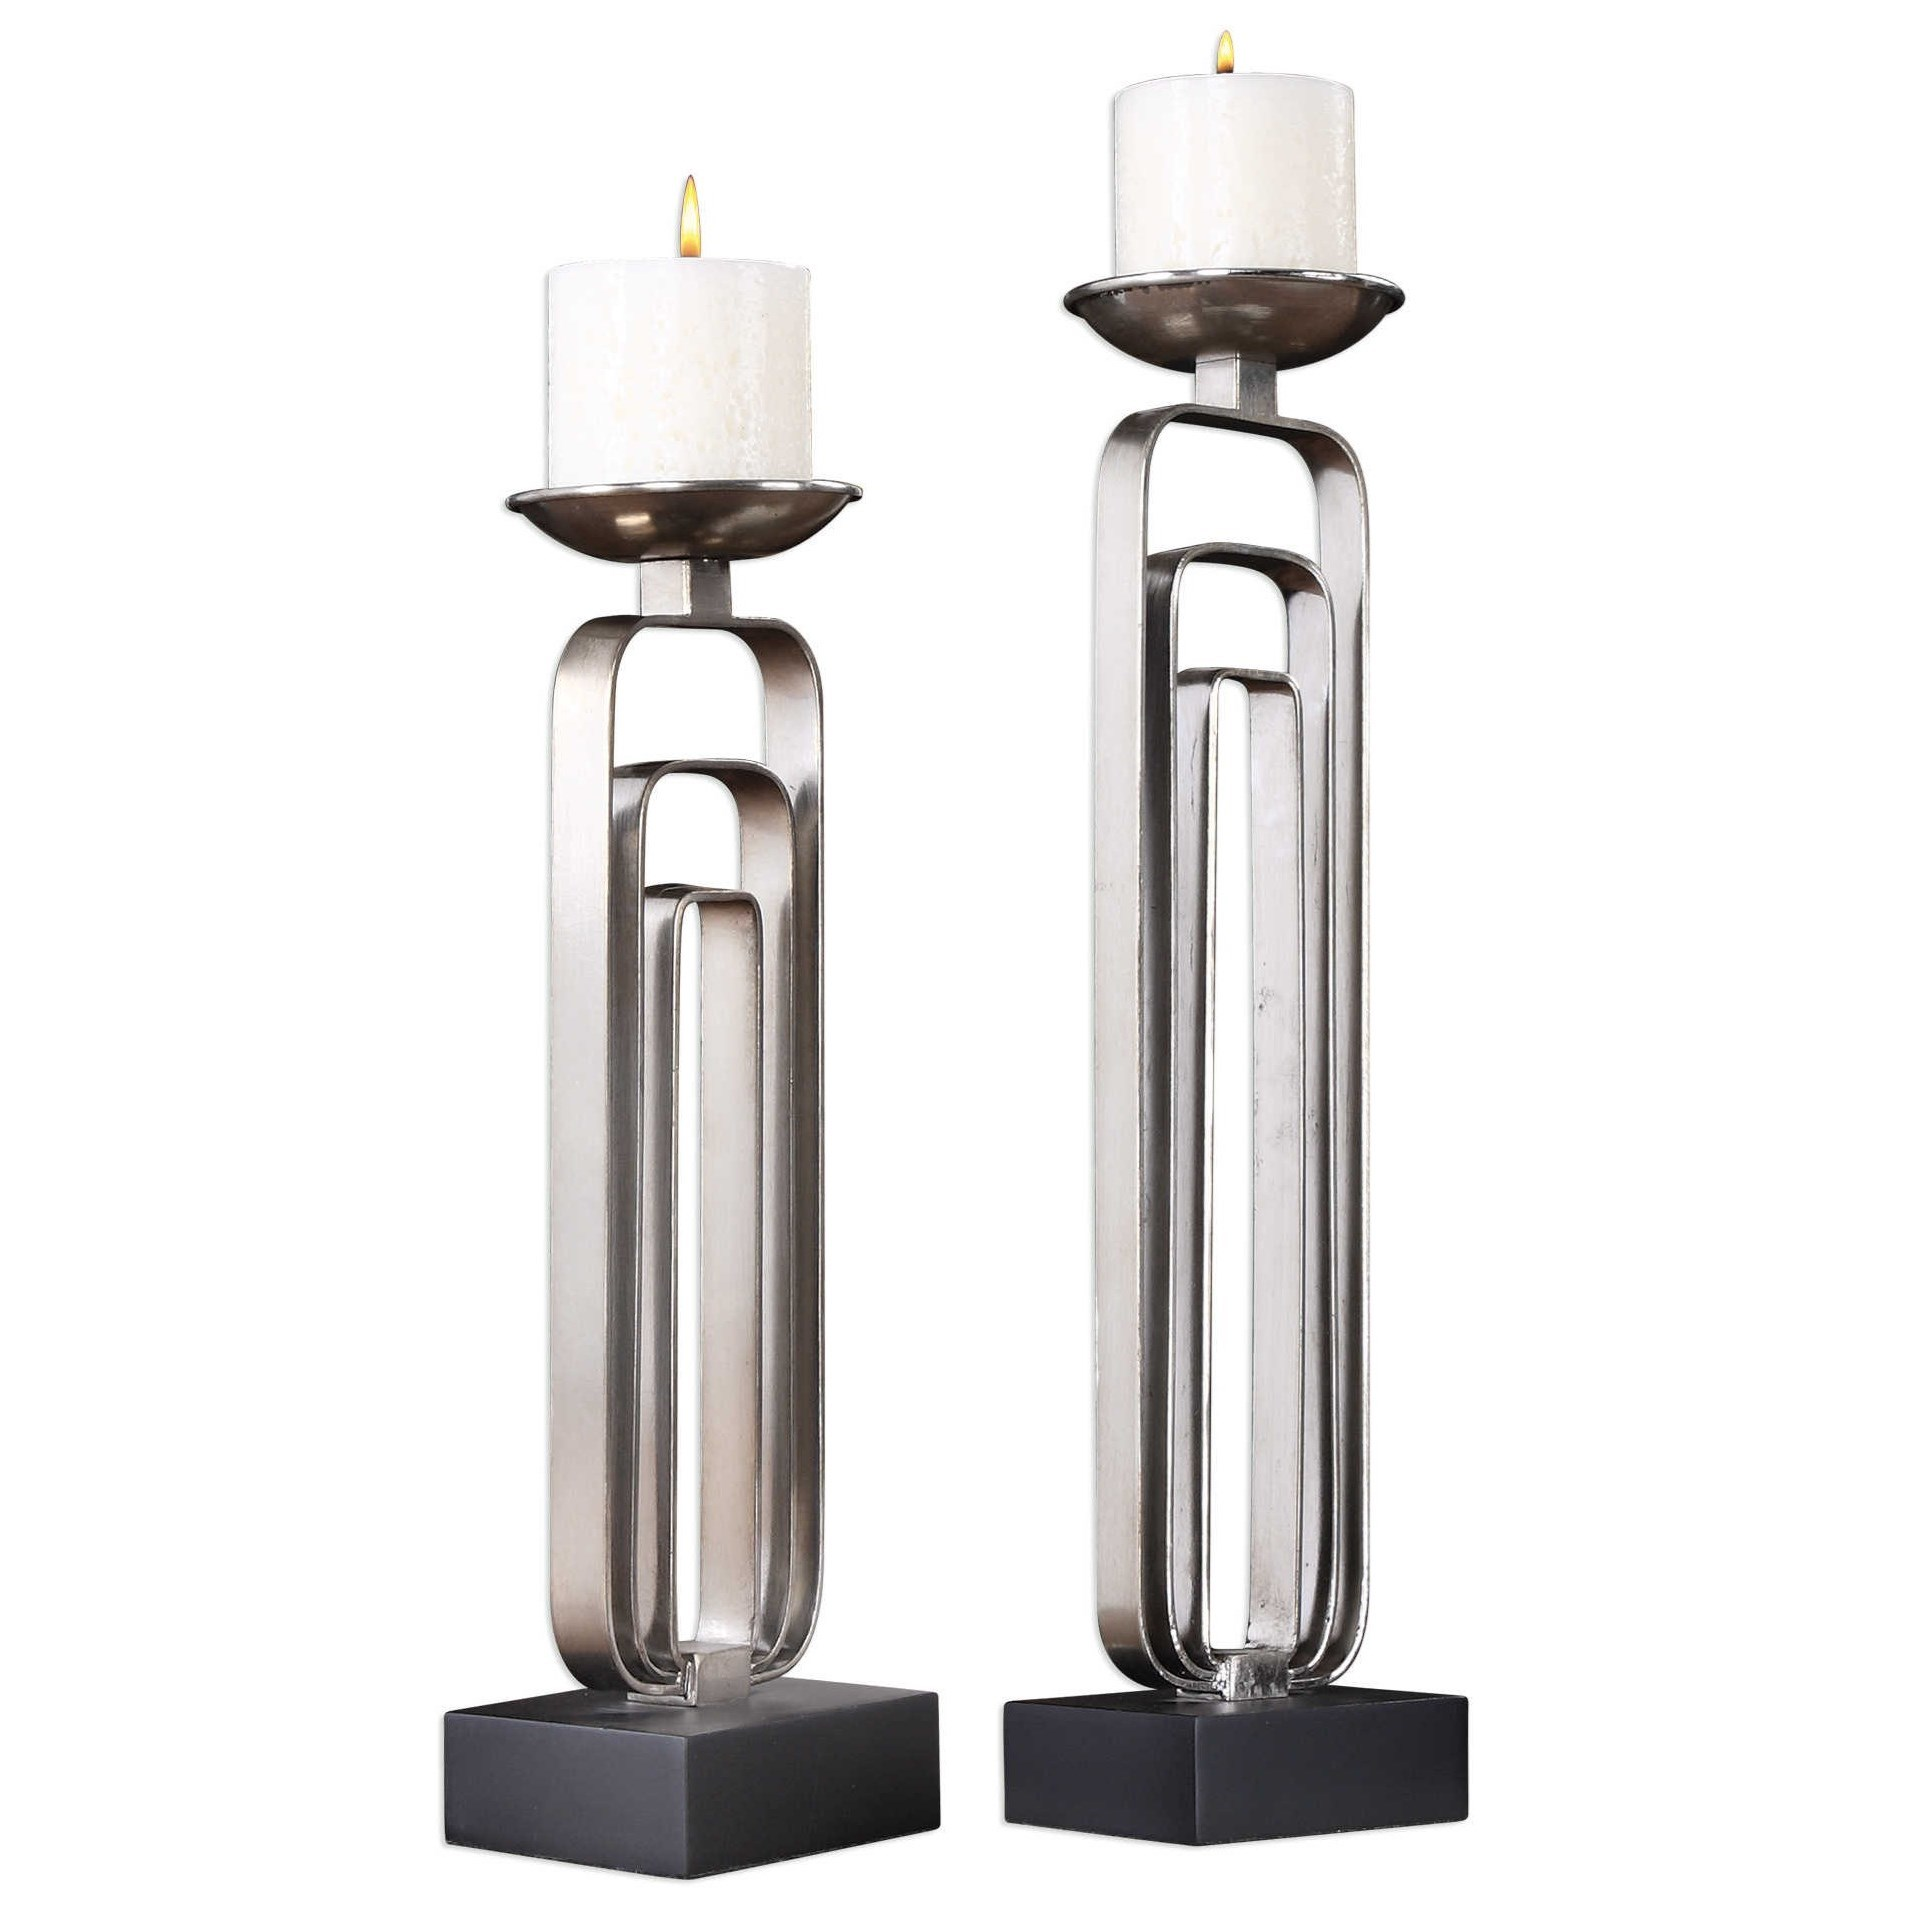 Uttermost Accessories Cosme Candleholders (Set of 2) - Item Number: 18720